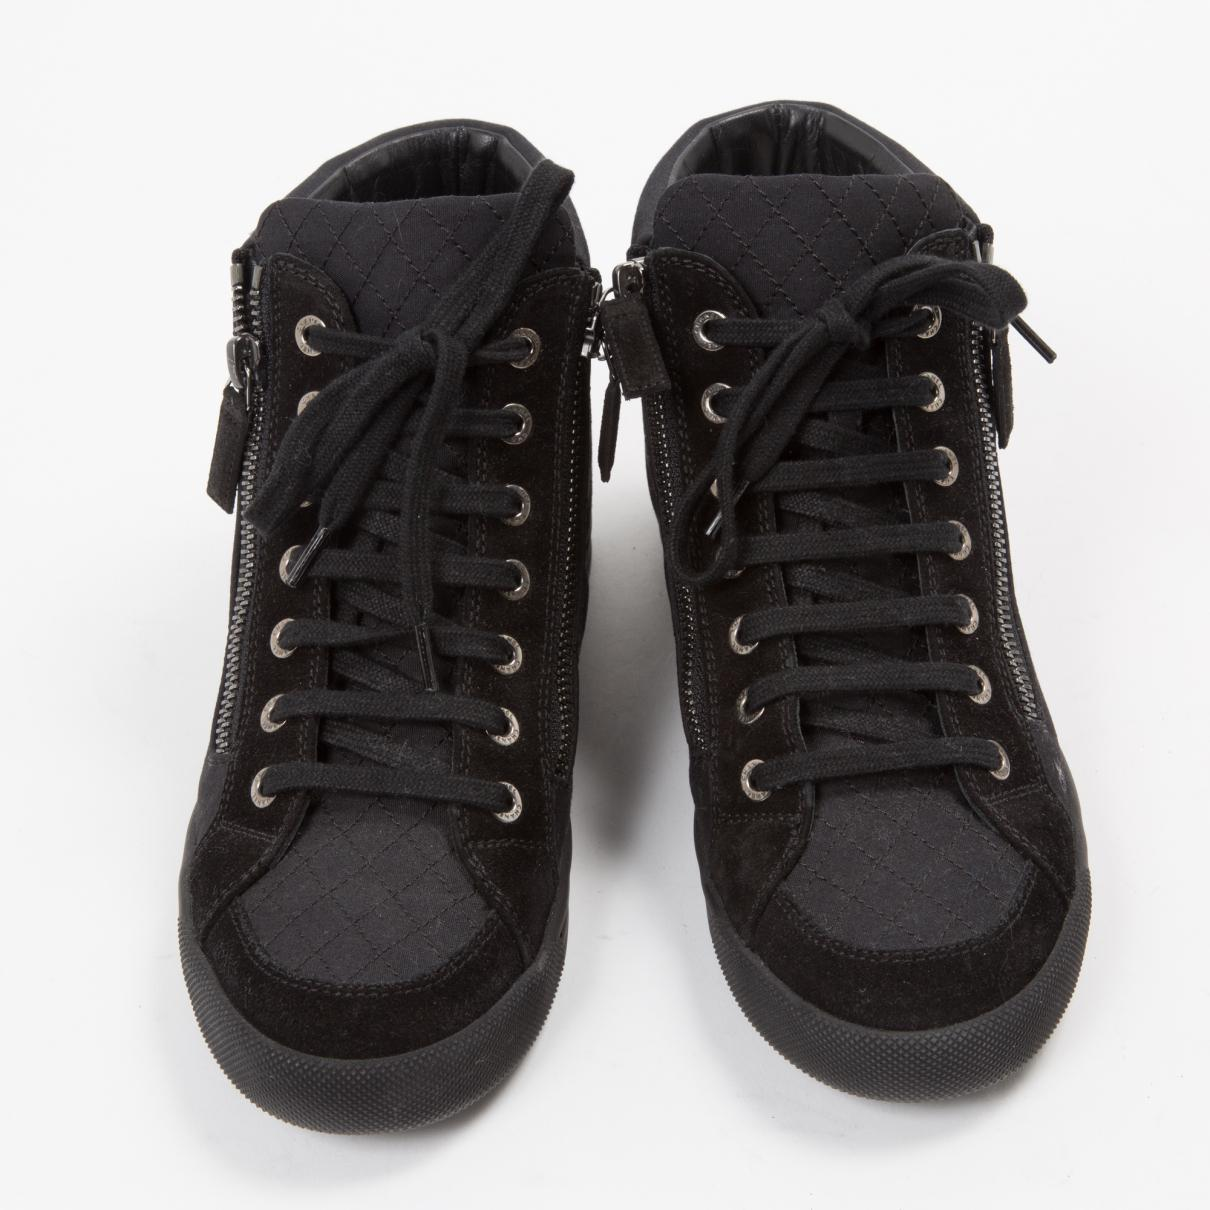 Chanel Pre-owned Cloth Trainers in Black - Lyst